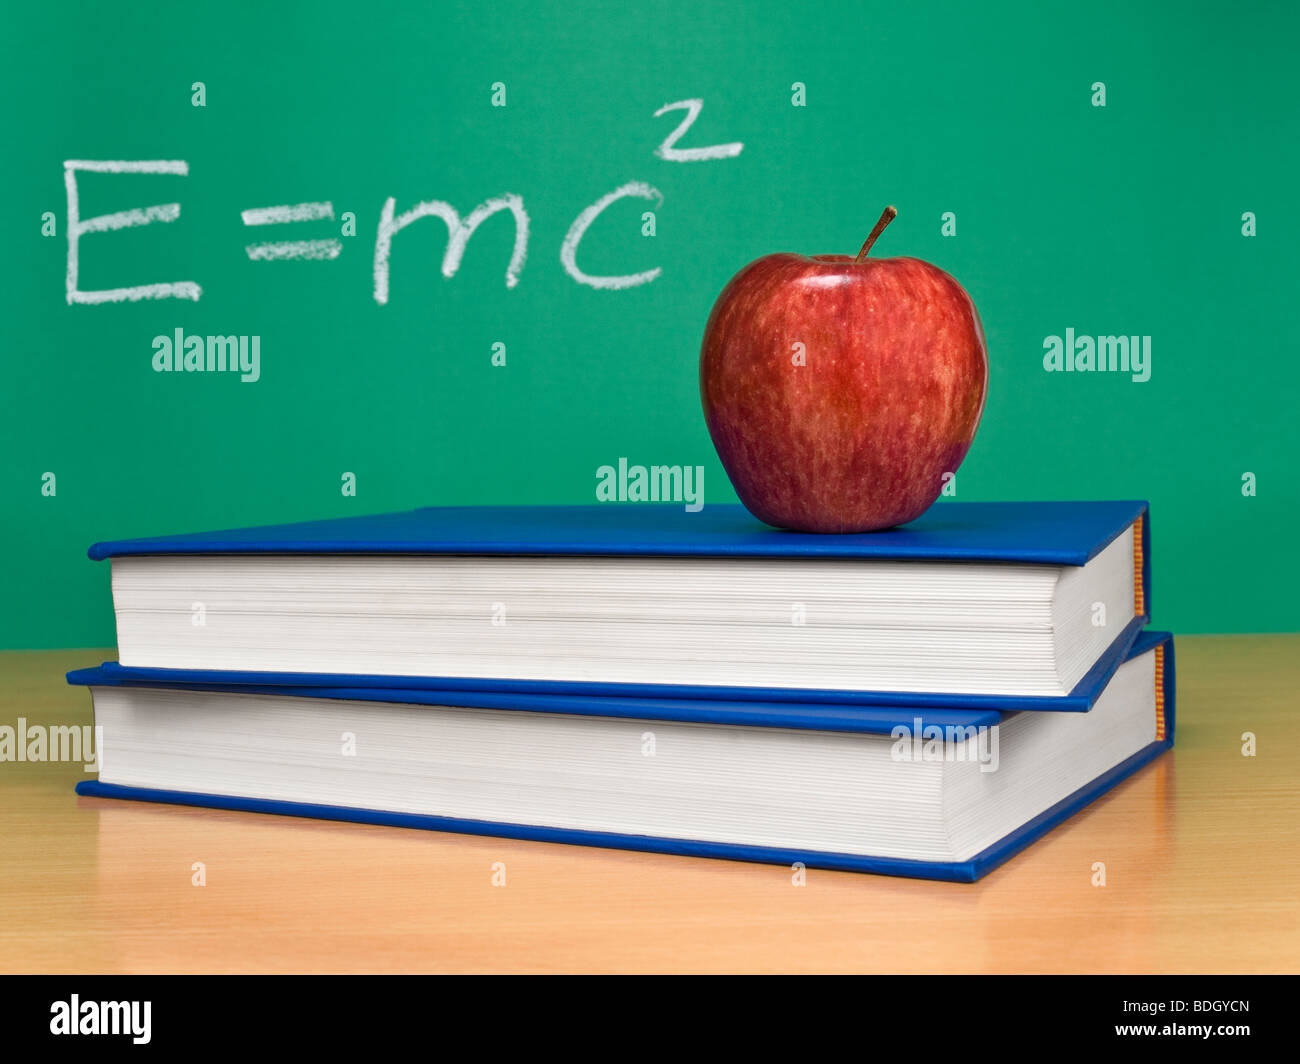 Einsteins formula of theory of relativity on a chalkboard. An apple over books on foreground. - Stock Image